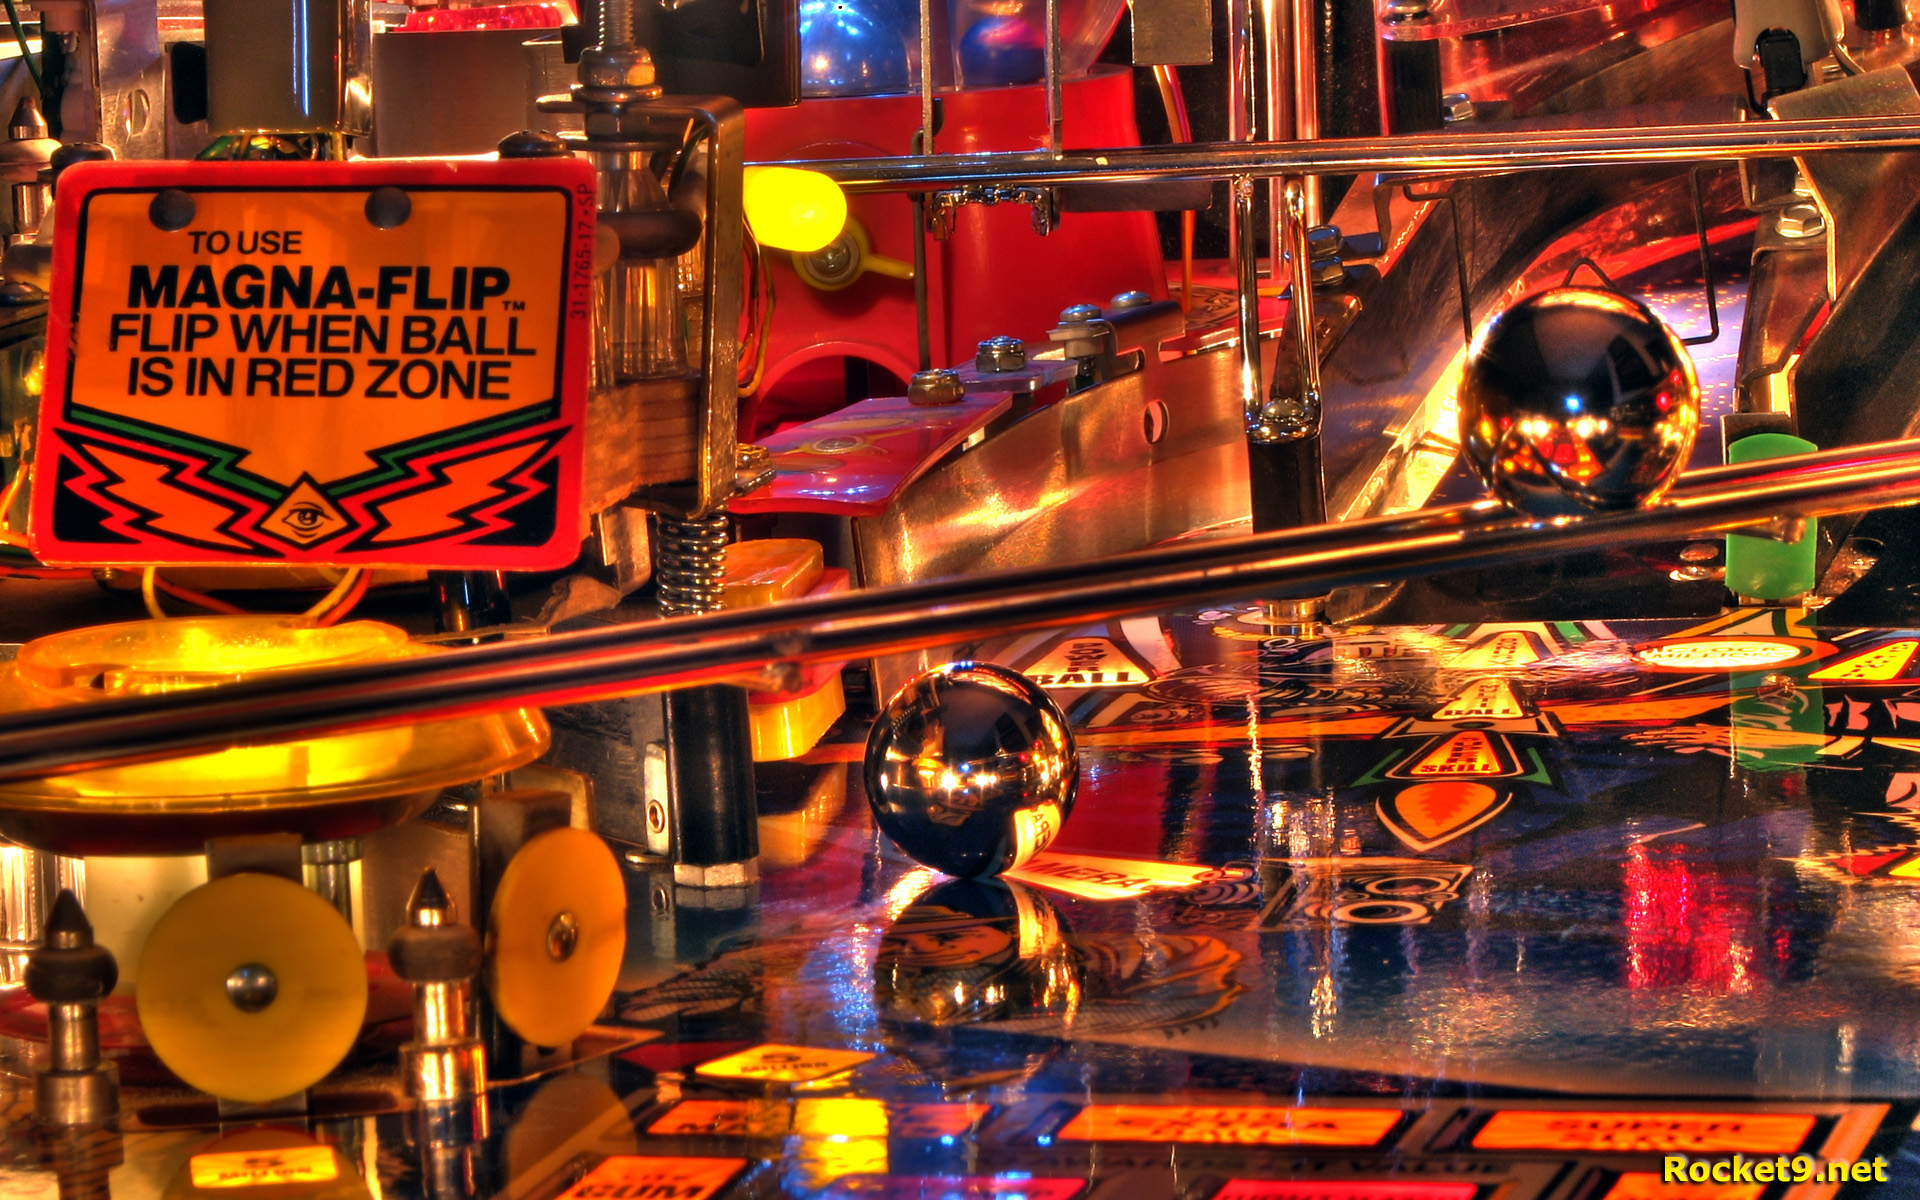 Iphone X Inside View Wallpaper Twilight Zone Pinball Hdr Full Hd Wallpaper And Background